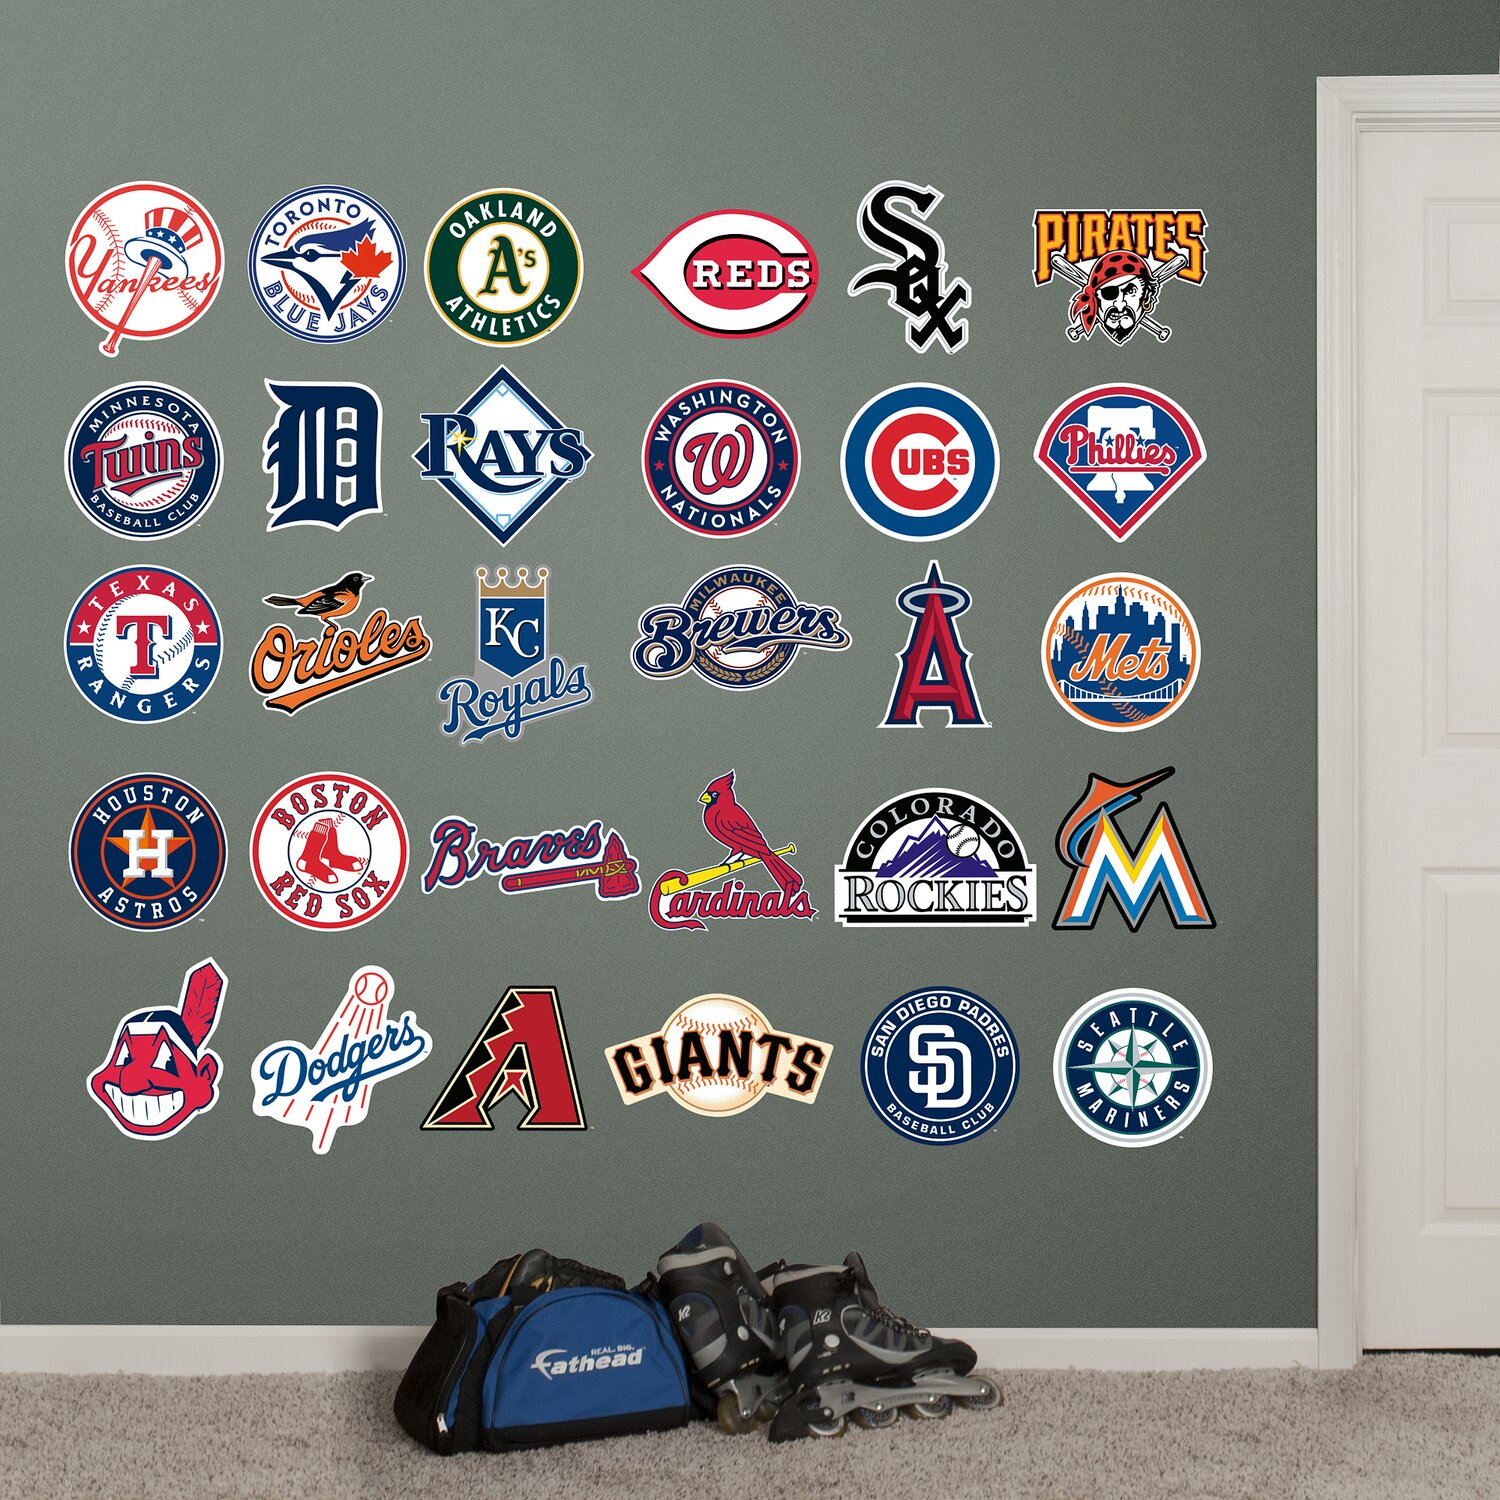 Fathead wall decal reviews